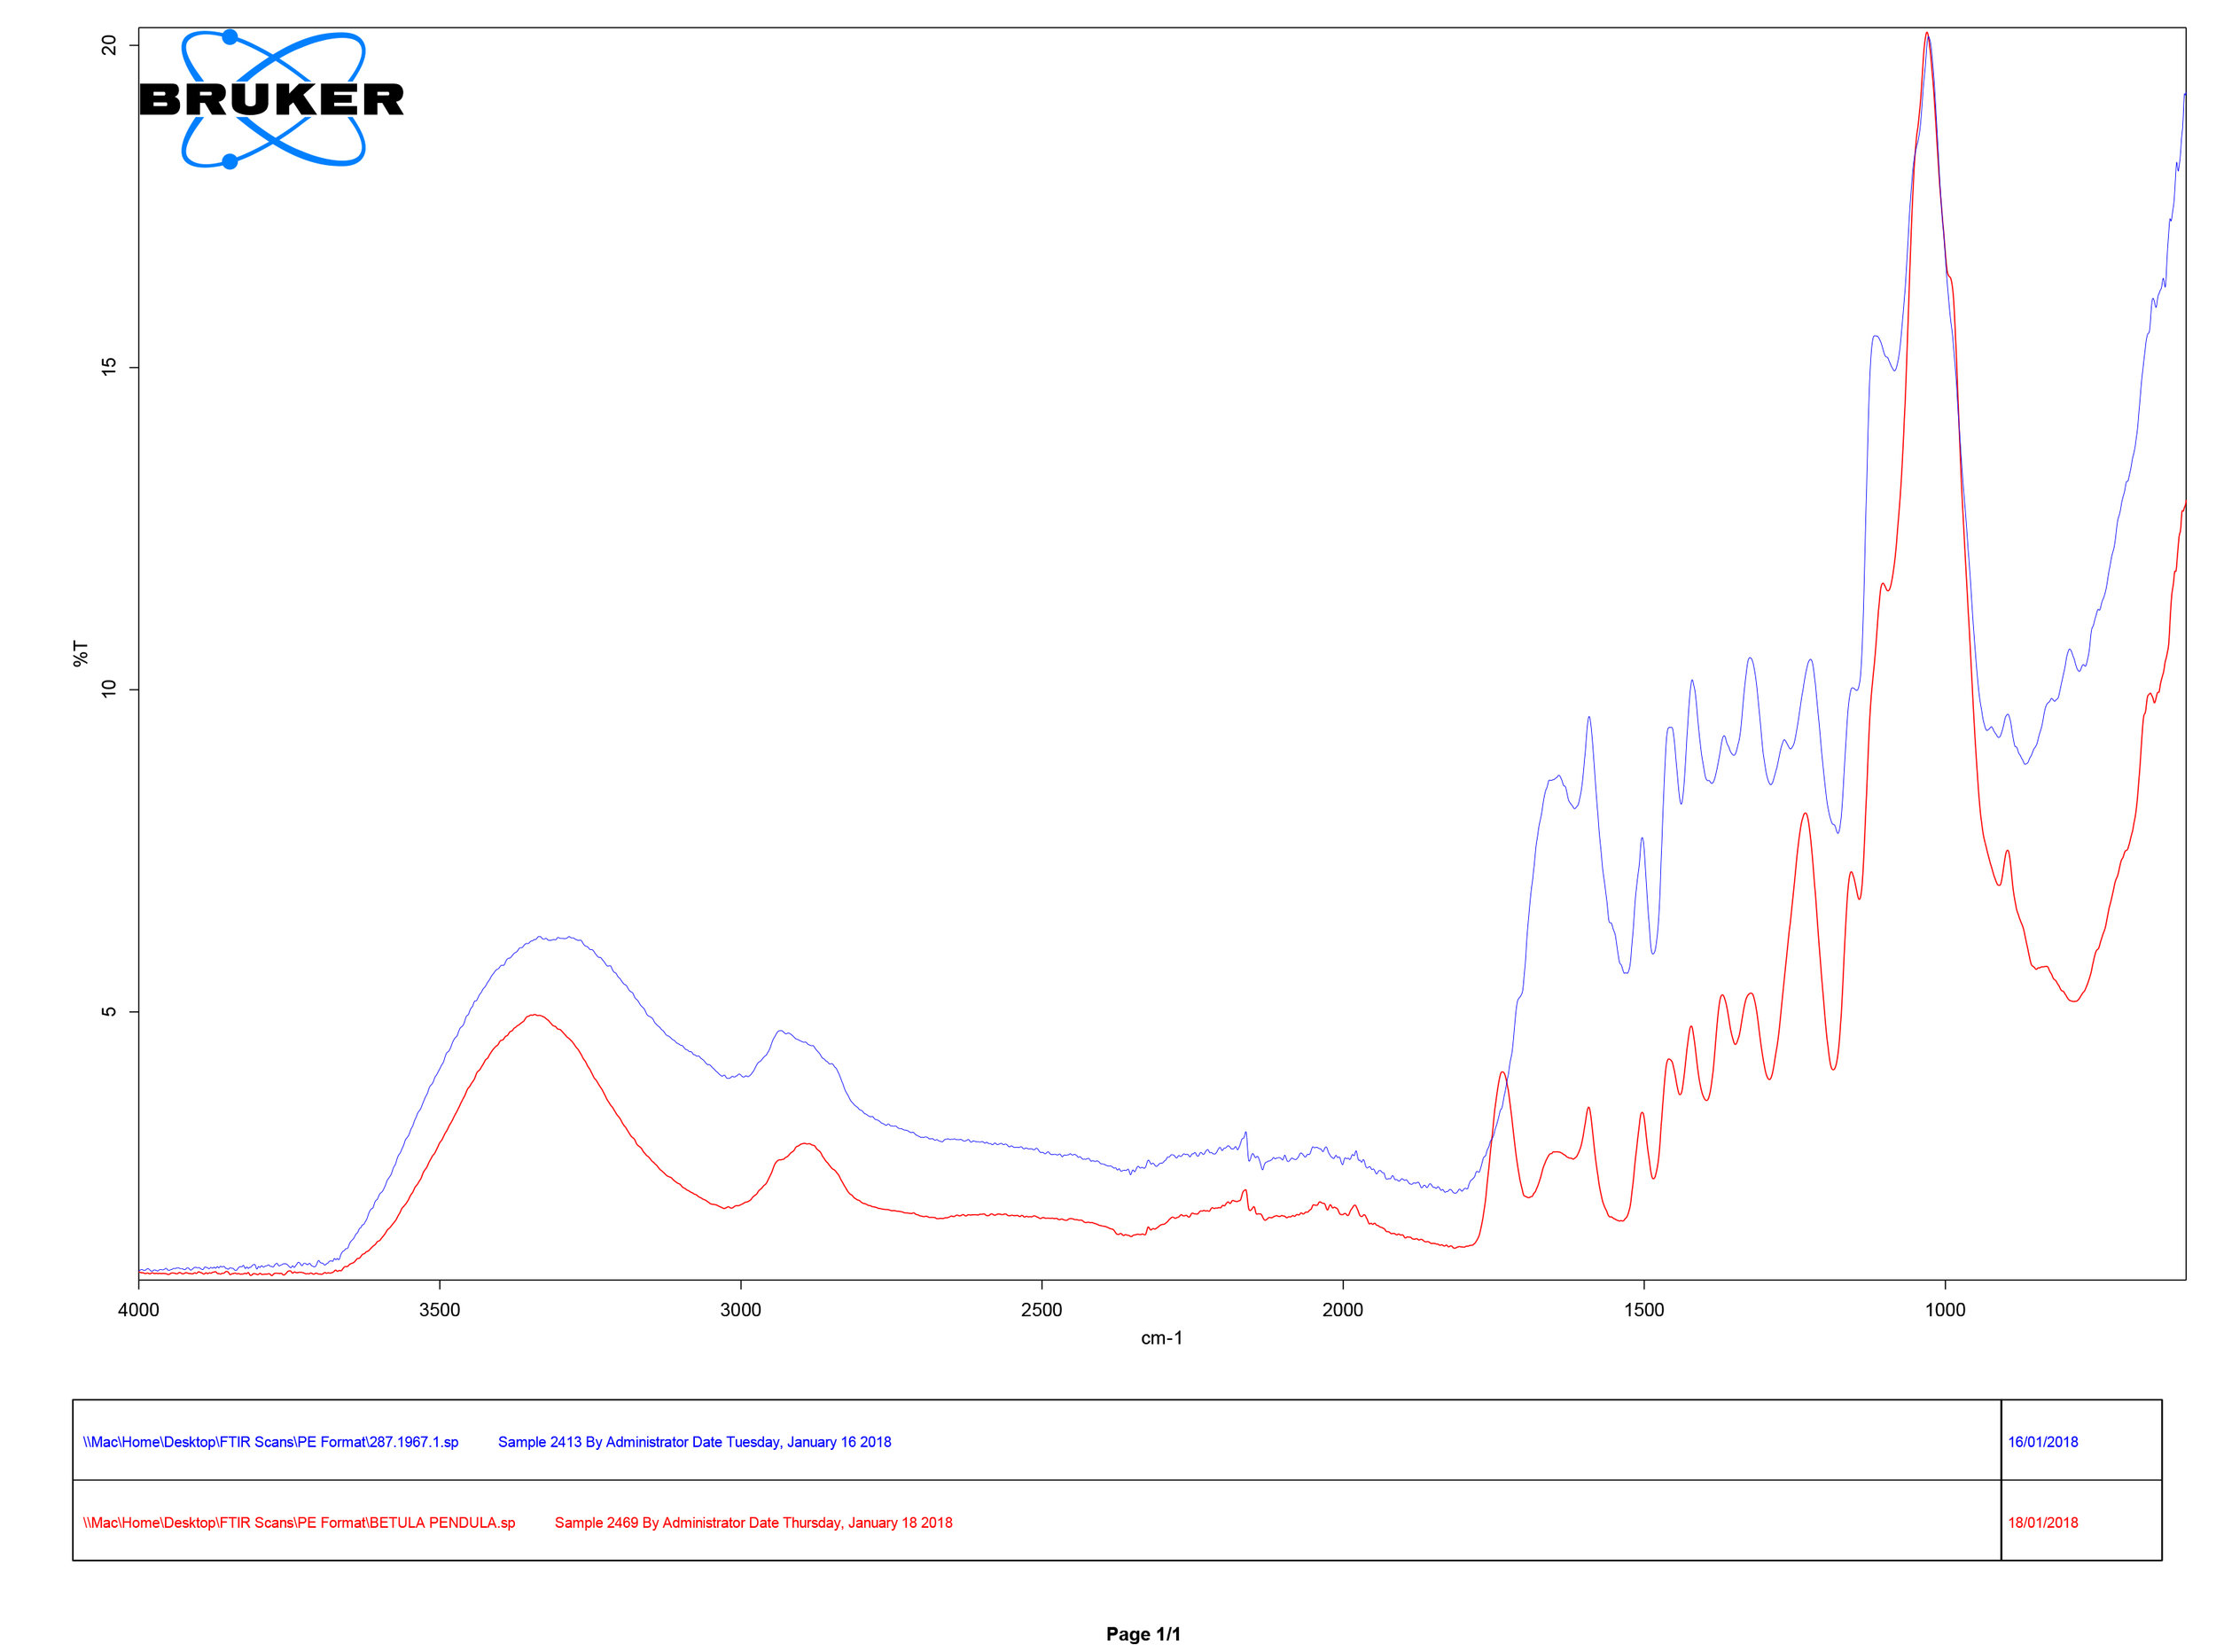 FTIR spectral analysis showing comparison of sample collected from spade 284.1967 (blue), and reference sample for Birch ( Betula pendula ) (red)